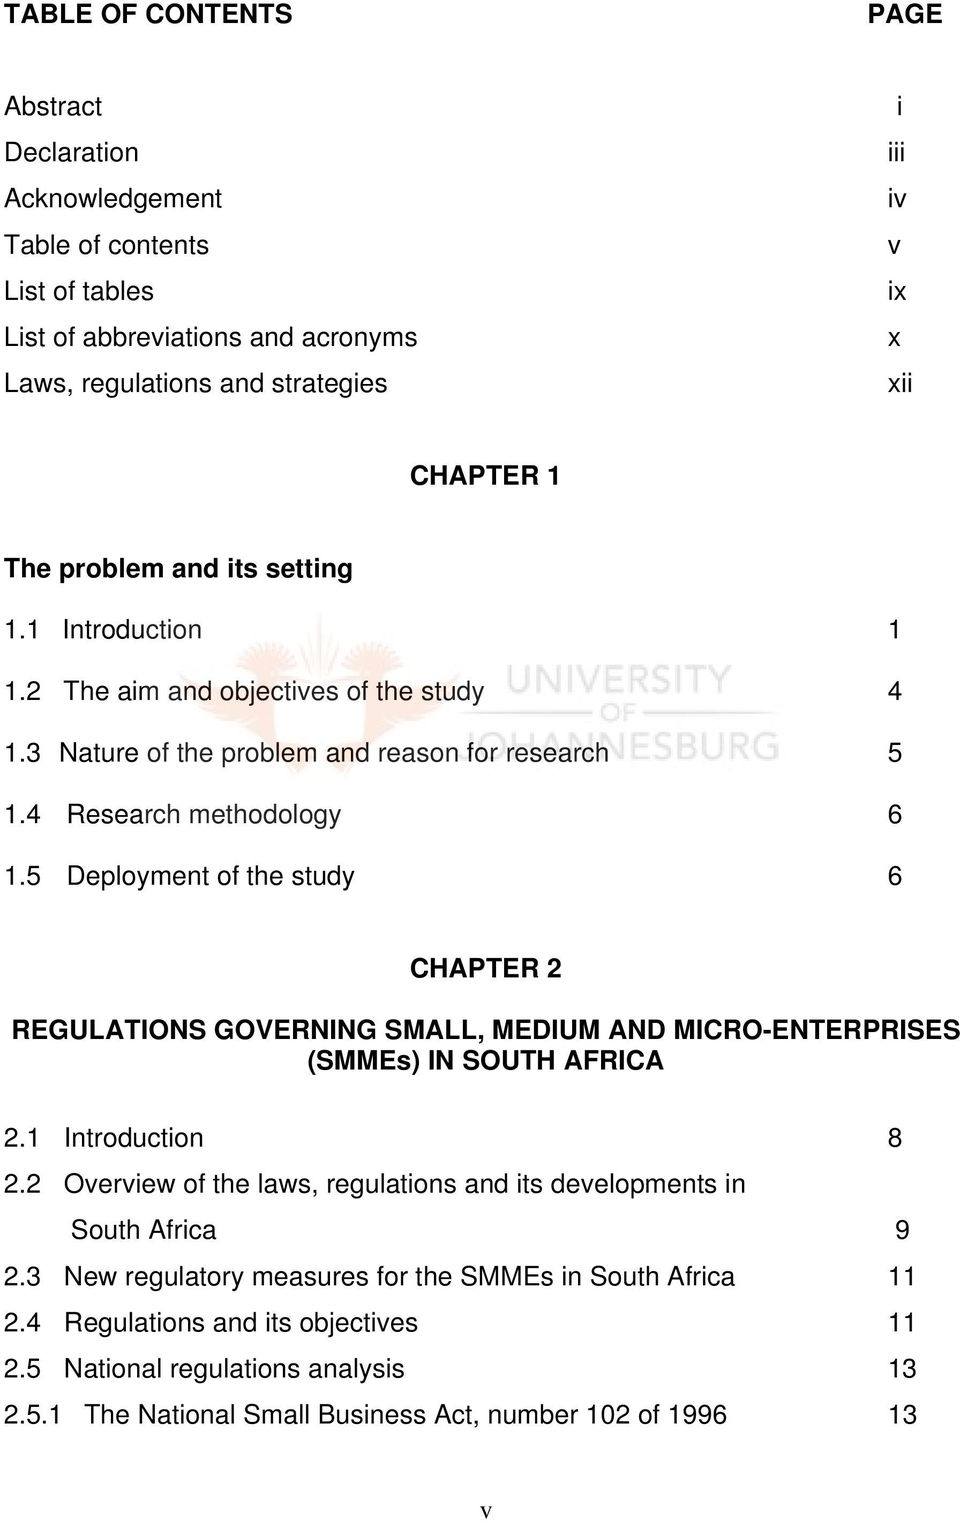 5 Deployment of the study 6 CHAPTER 2 REGULATIONS GOVERNING SMALL, MEDIUM AND MICRO-ENTERPRISES (SMMEs) IN SOUTH AFRICA 2.1 Introduction 8 2.